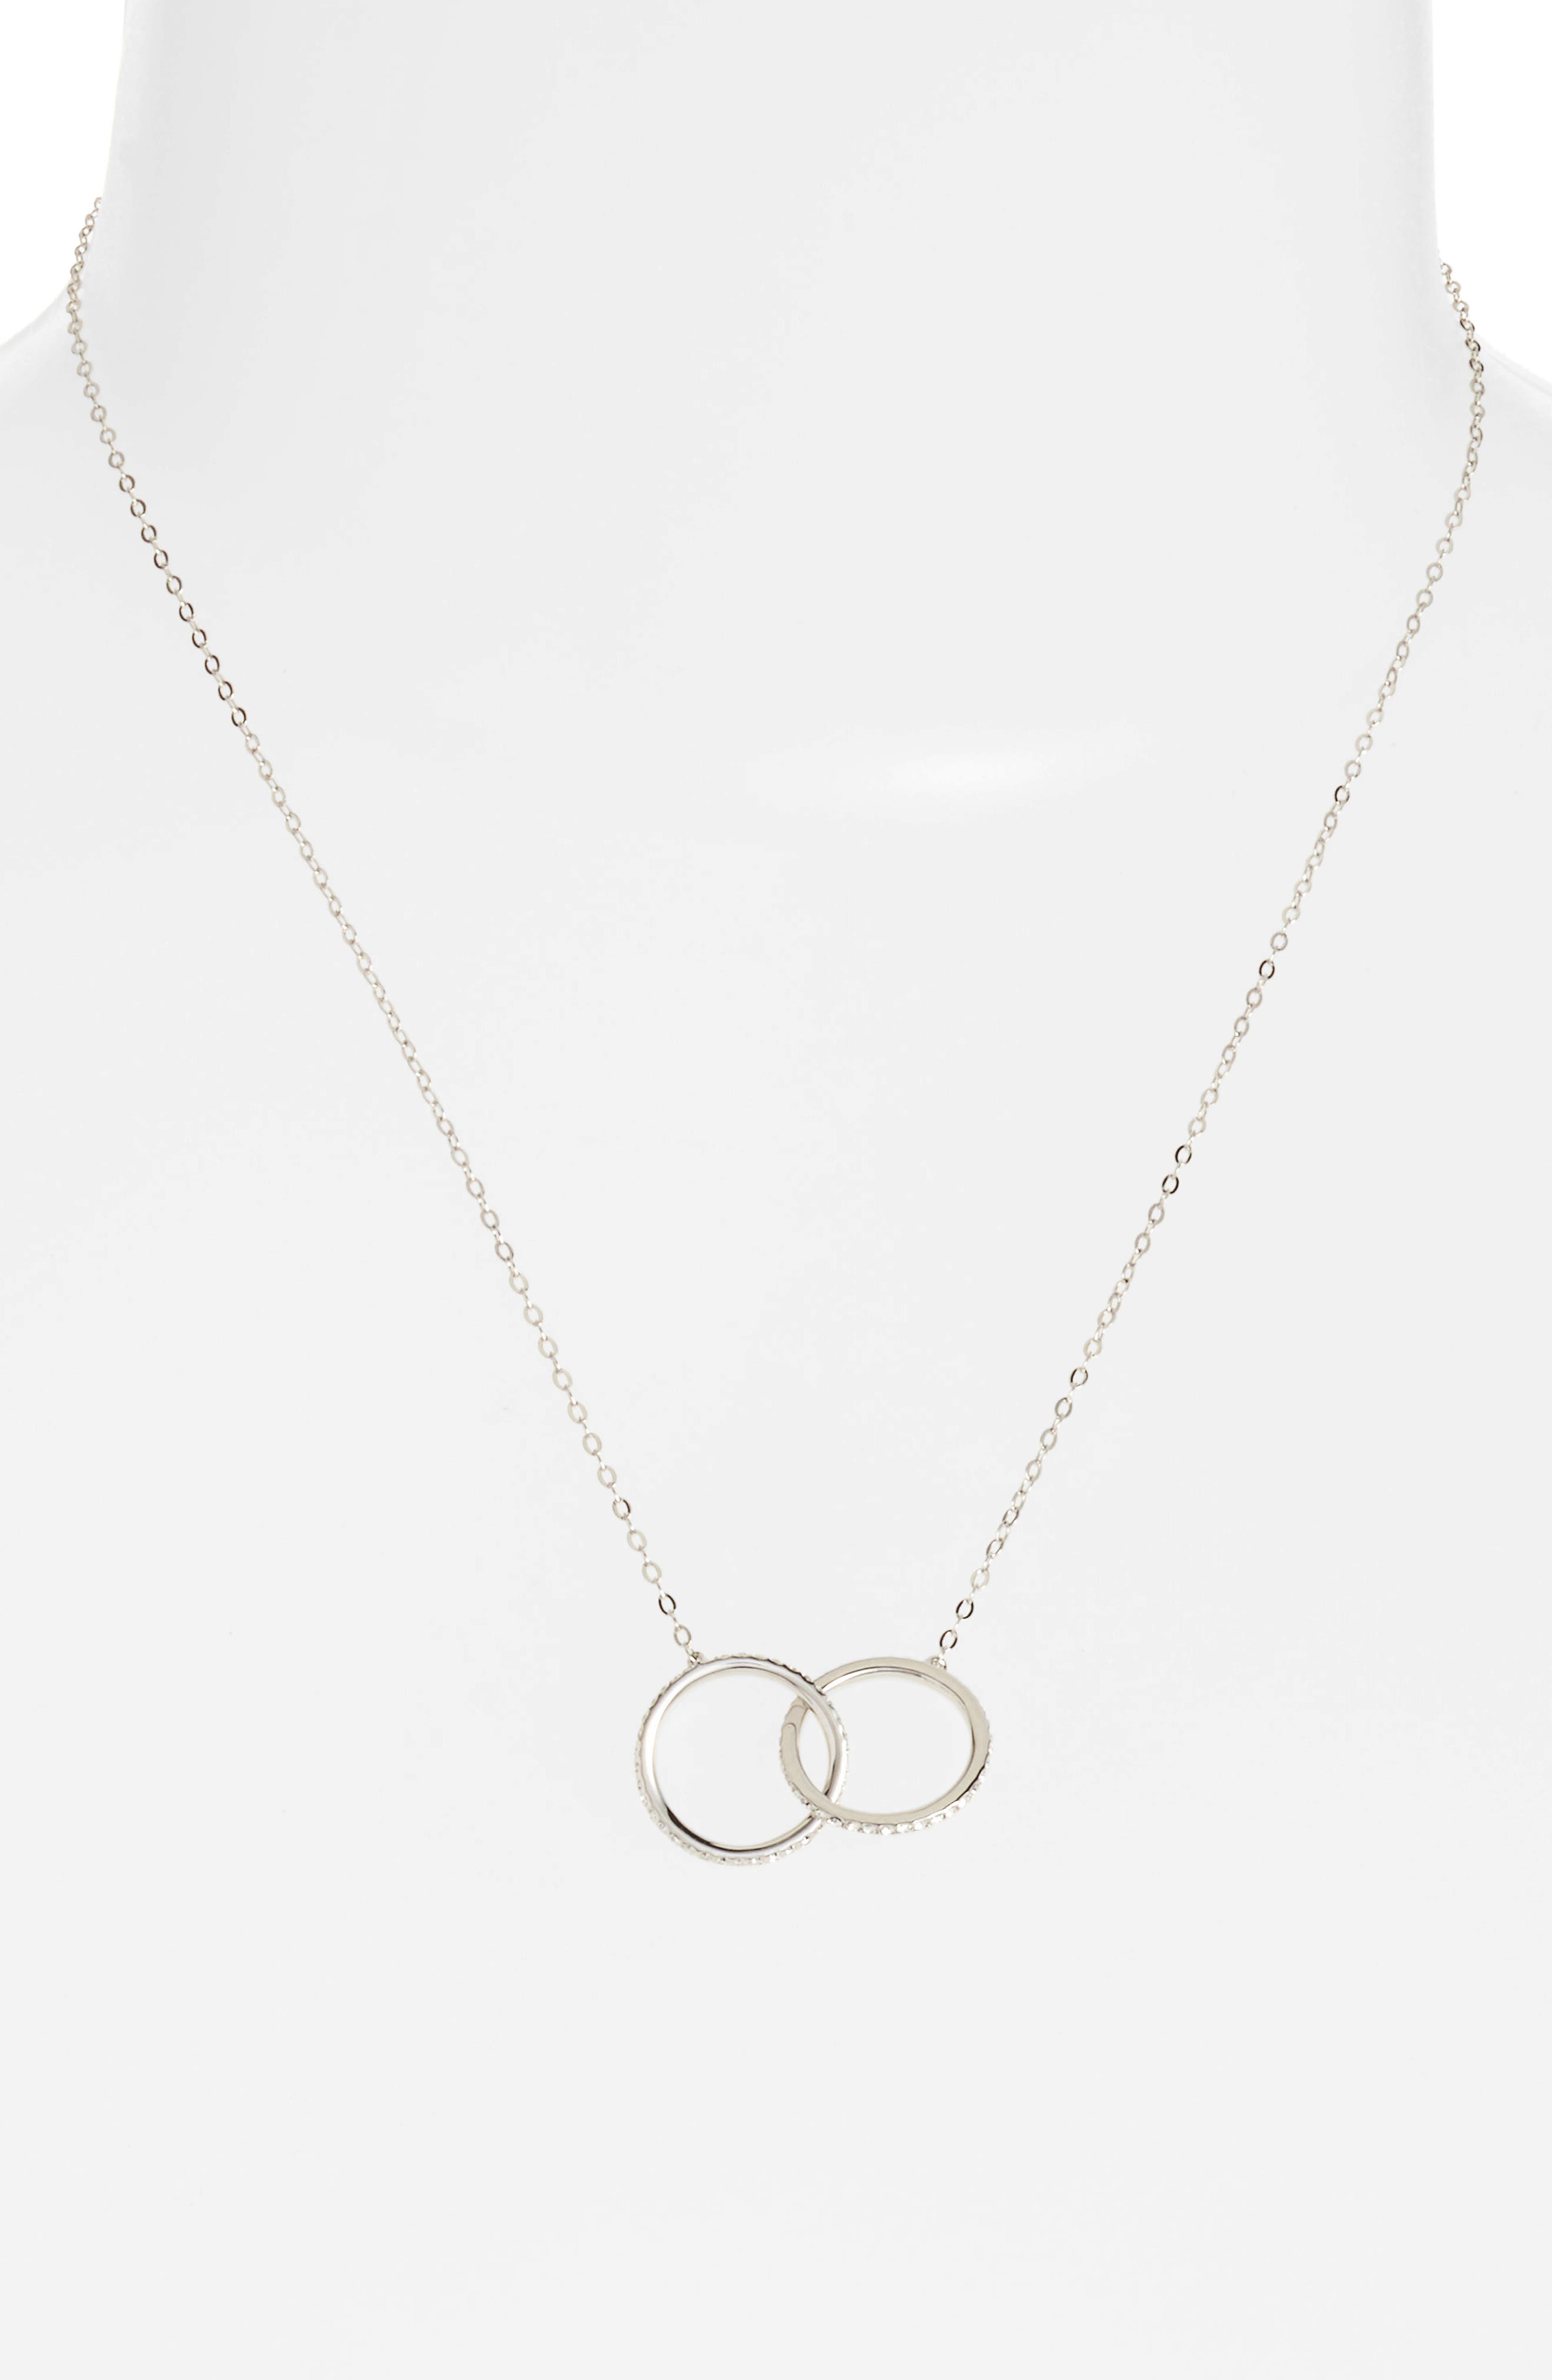 Trinity Double Link Pendant Necklace,                         Main,                         color, Silver